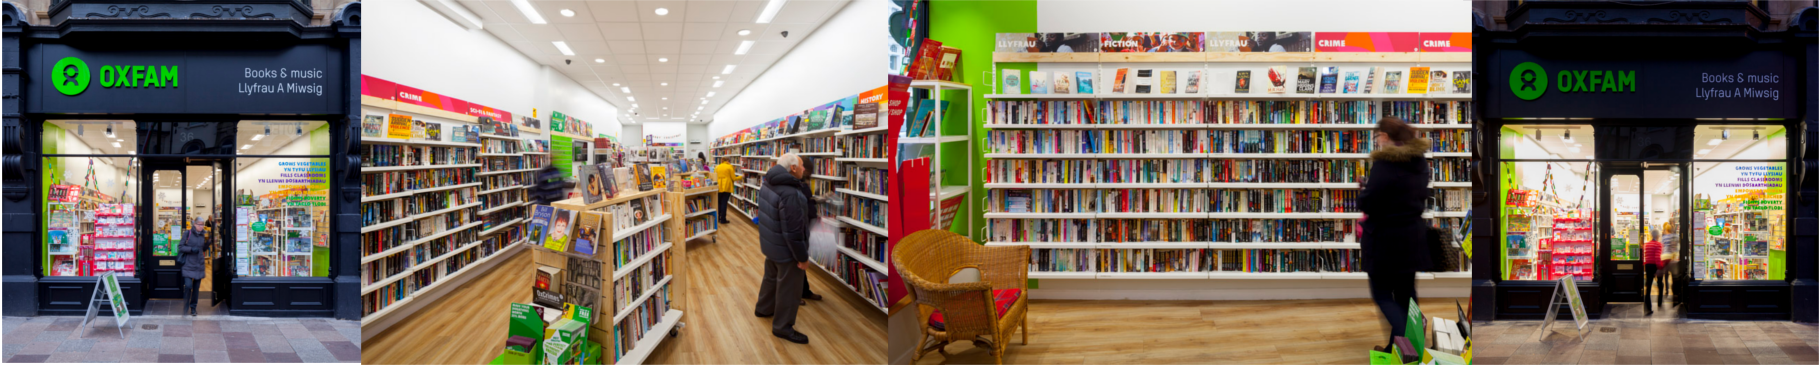 Oxfam's flagship store is worth the wait